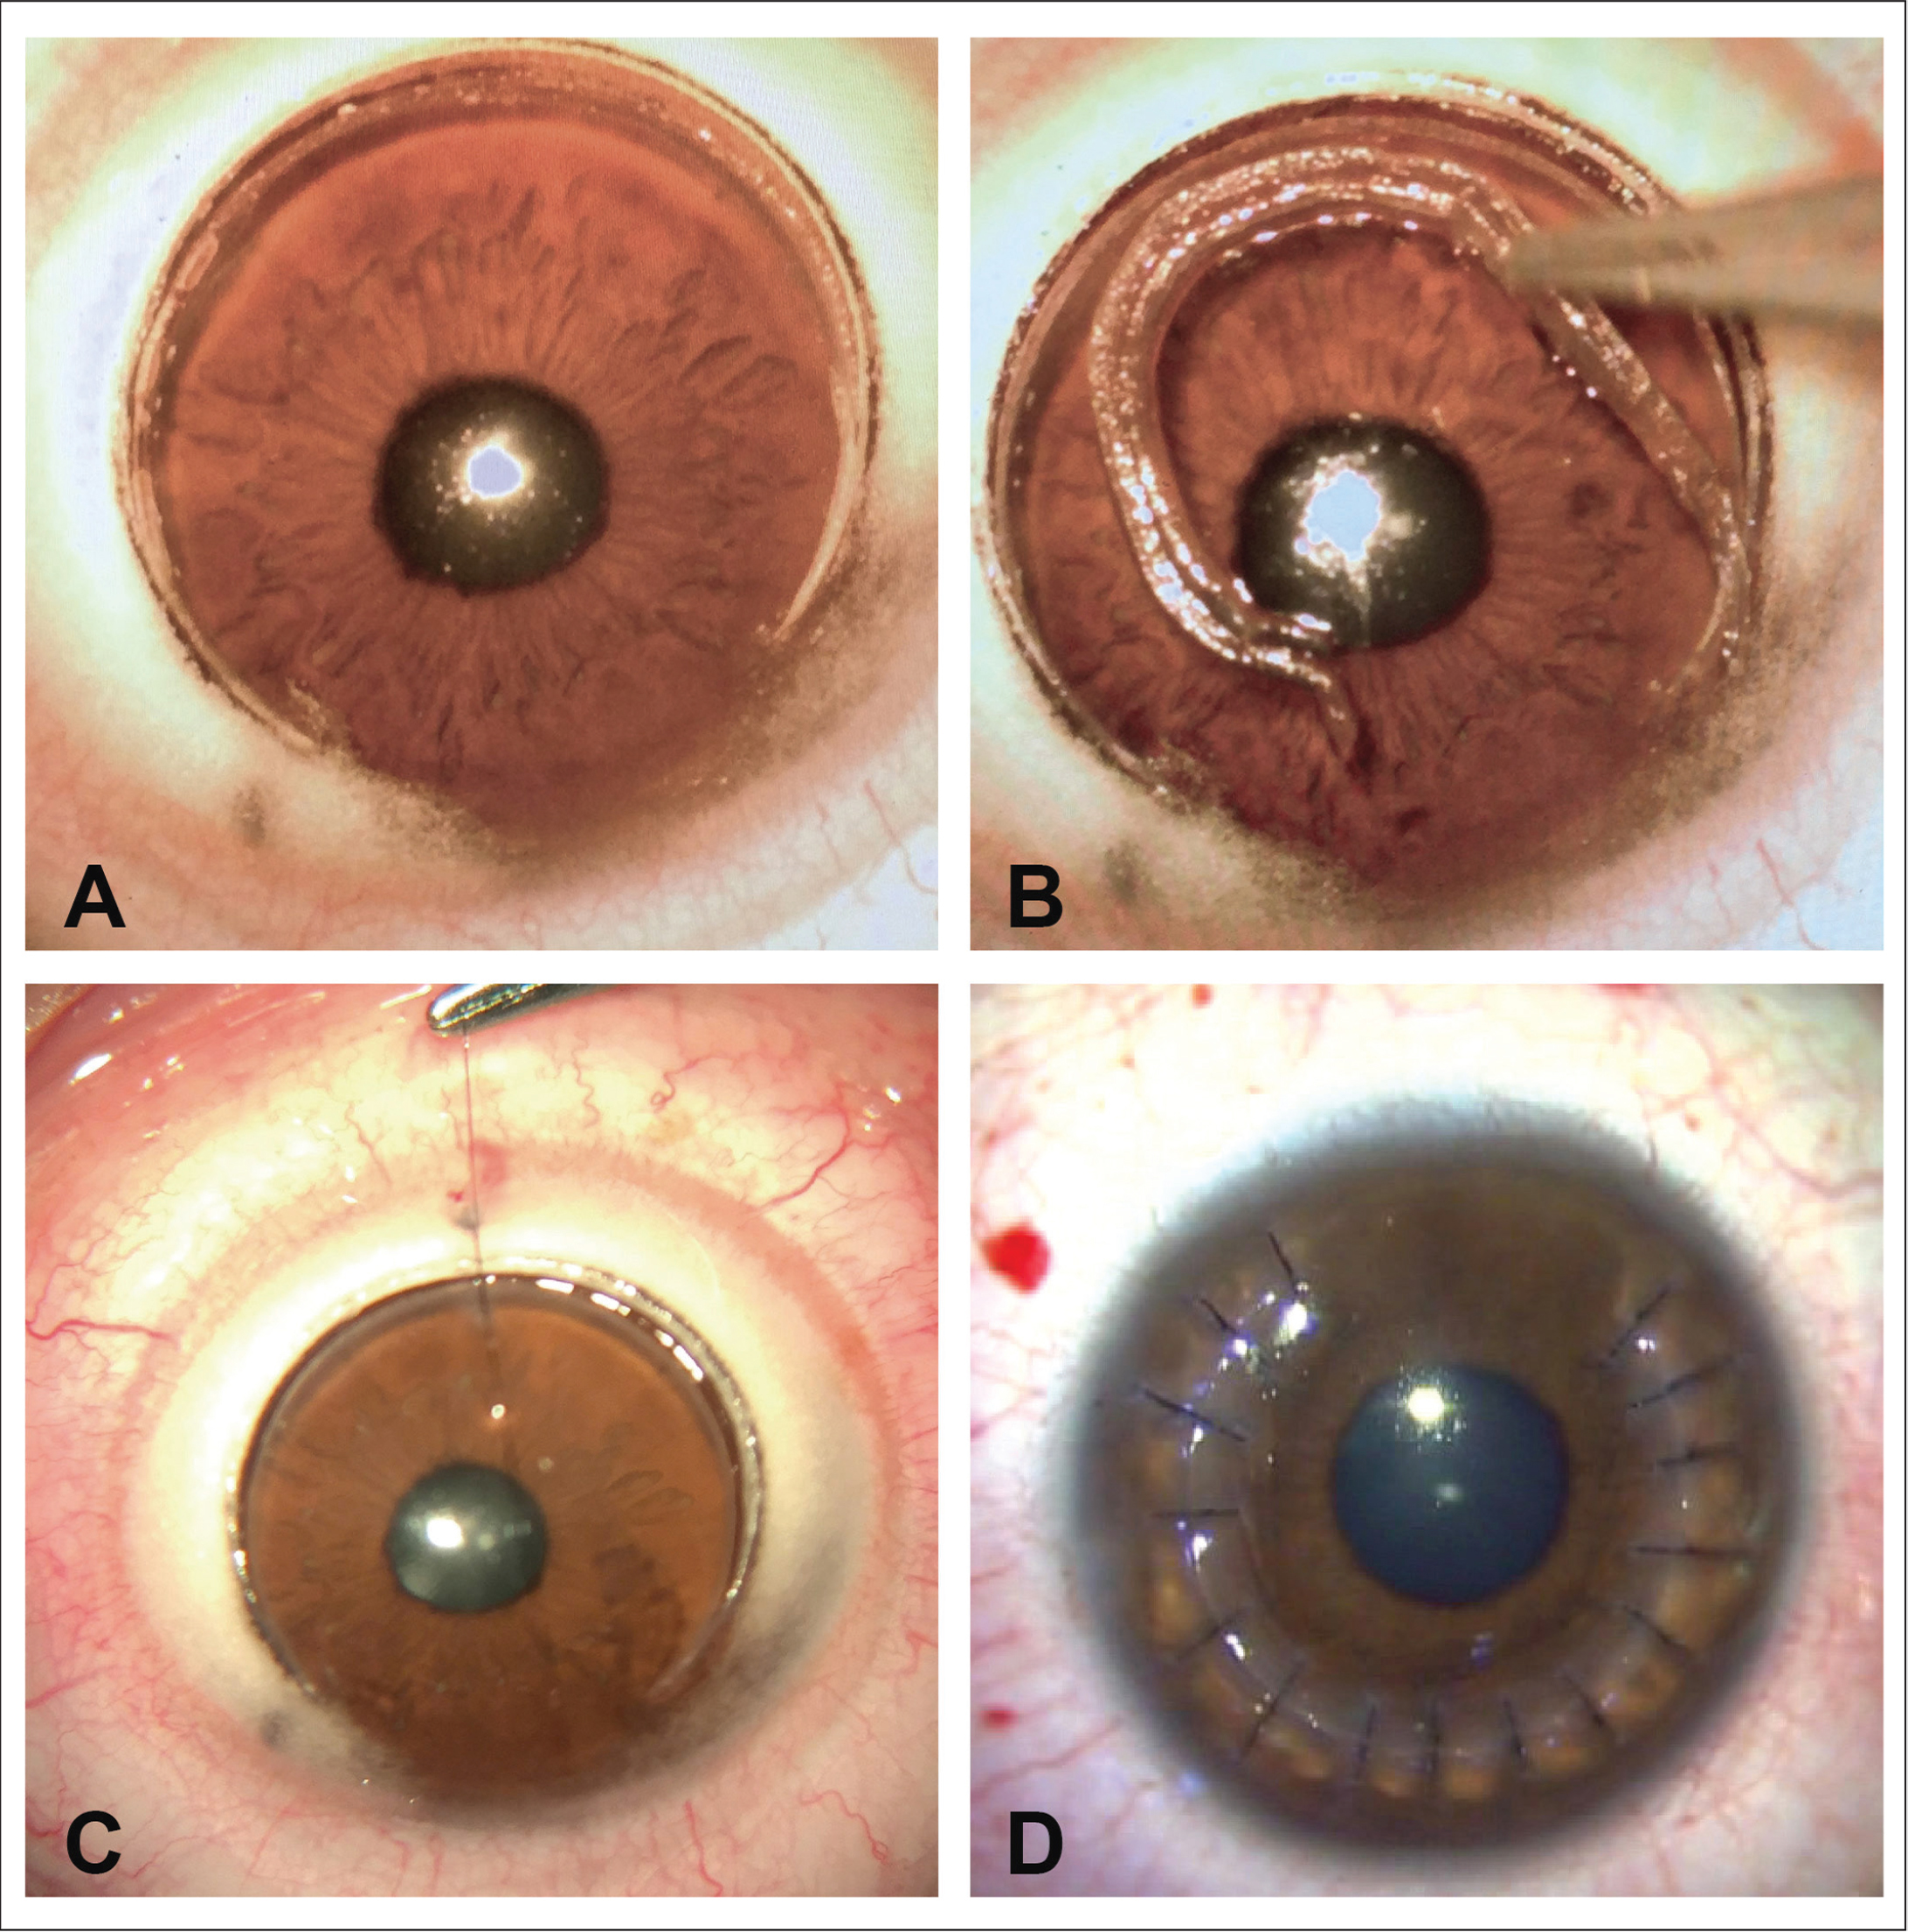 (A) A 270° keratectomy performed by femtosecond laser. (B) A piece of 270° arc length keratectomy taken off the cornea. (C) Edges are sutured by interrupted stitches. (D) Immediately after the procedure with all stitches placed.